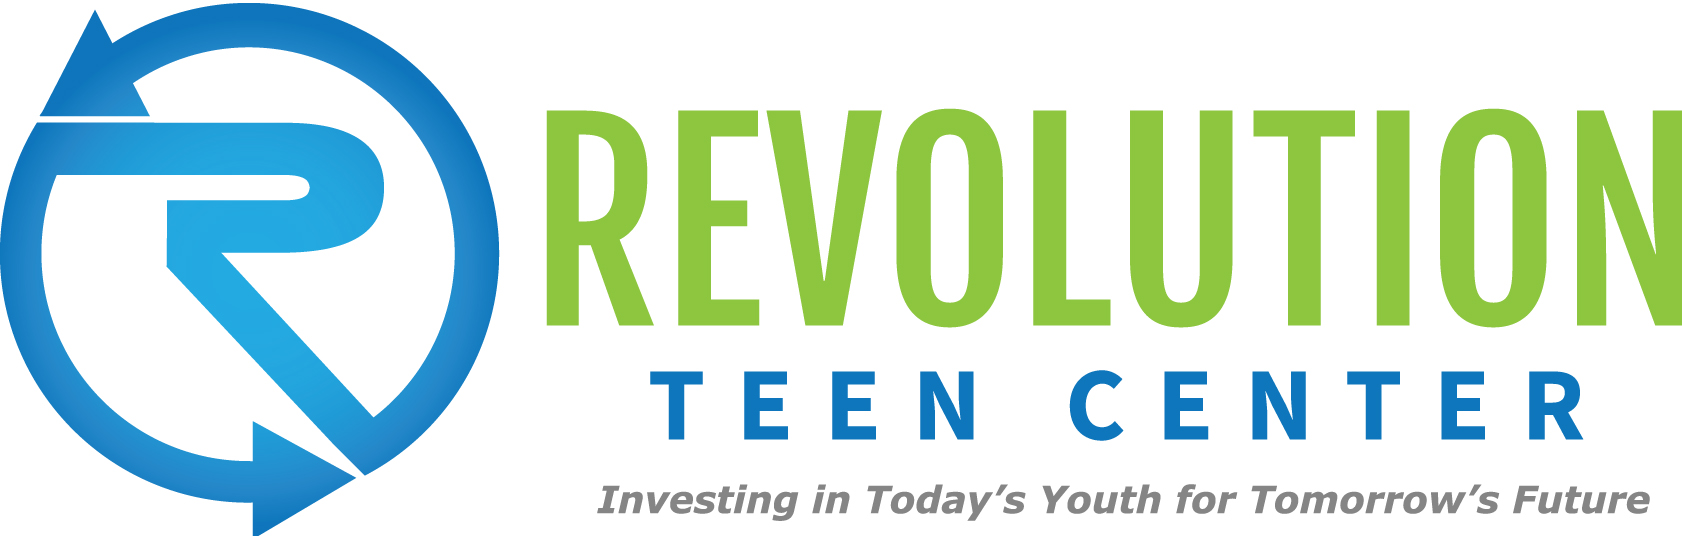 Revolution Teen Center